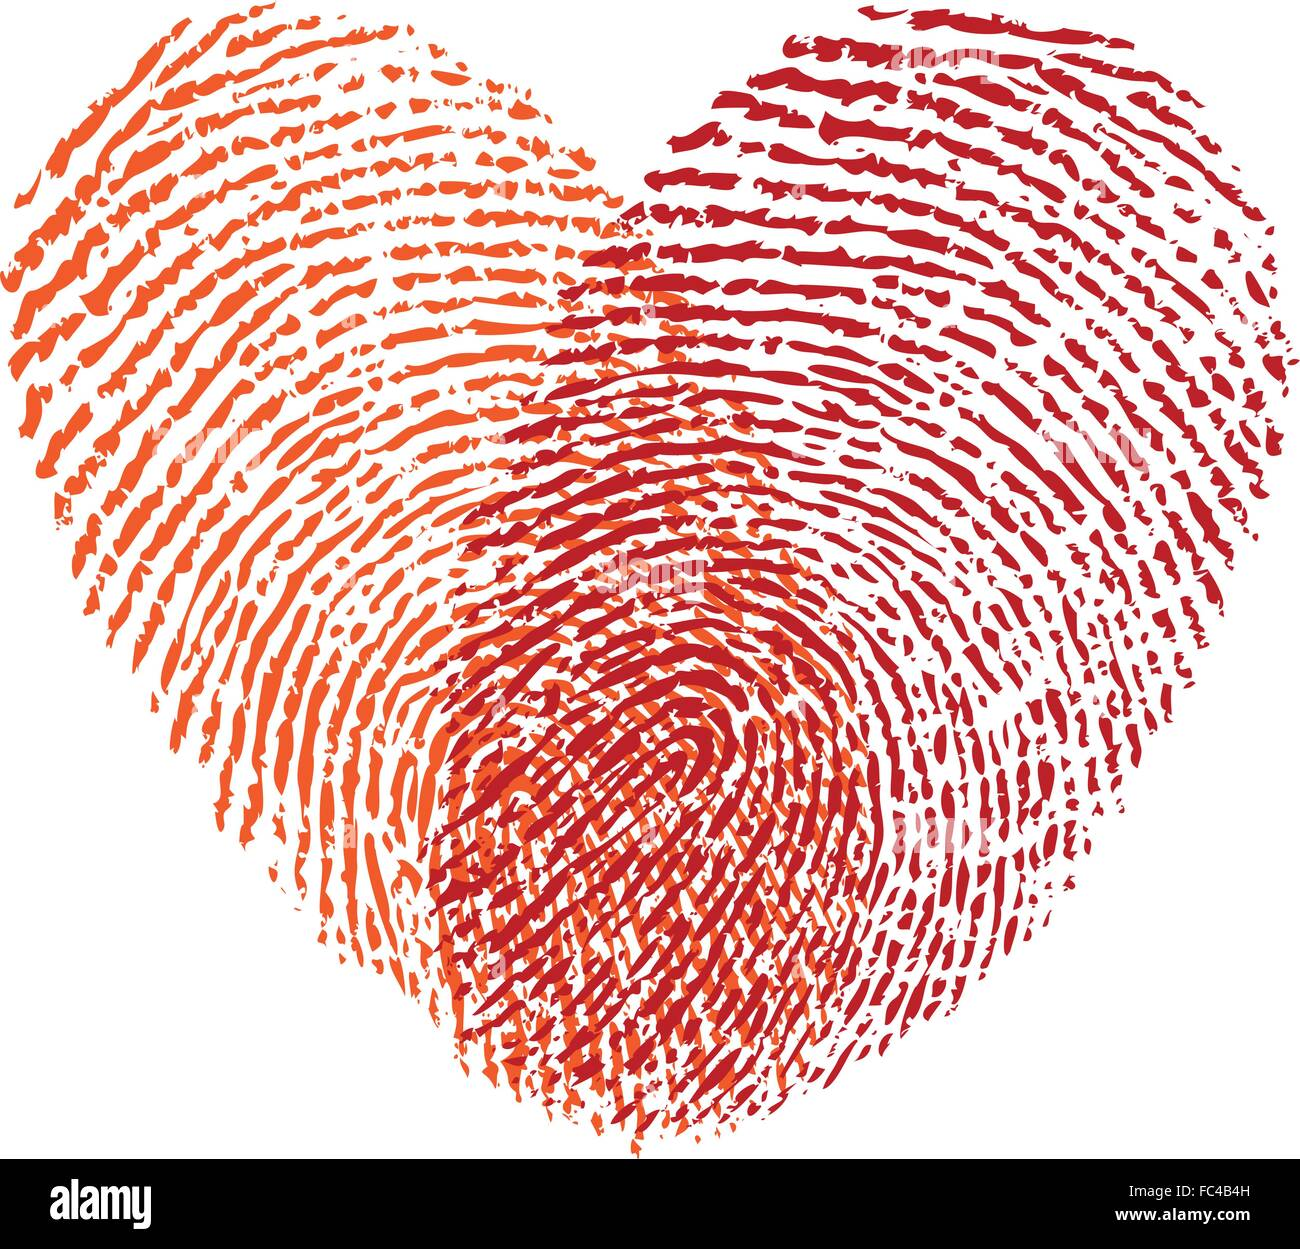 Heart Trace Stock Vector Images - Alamy